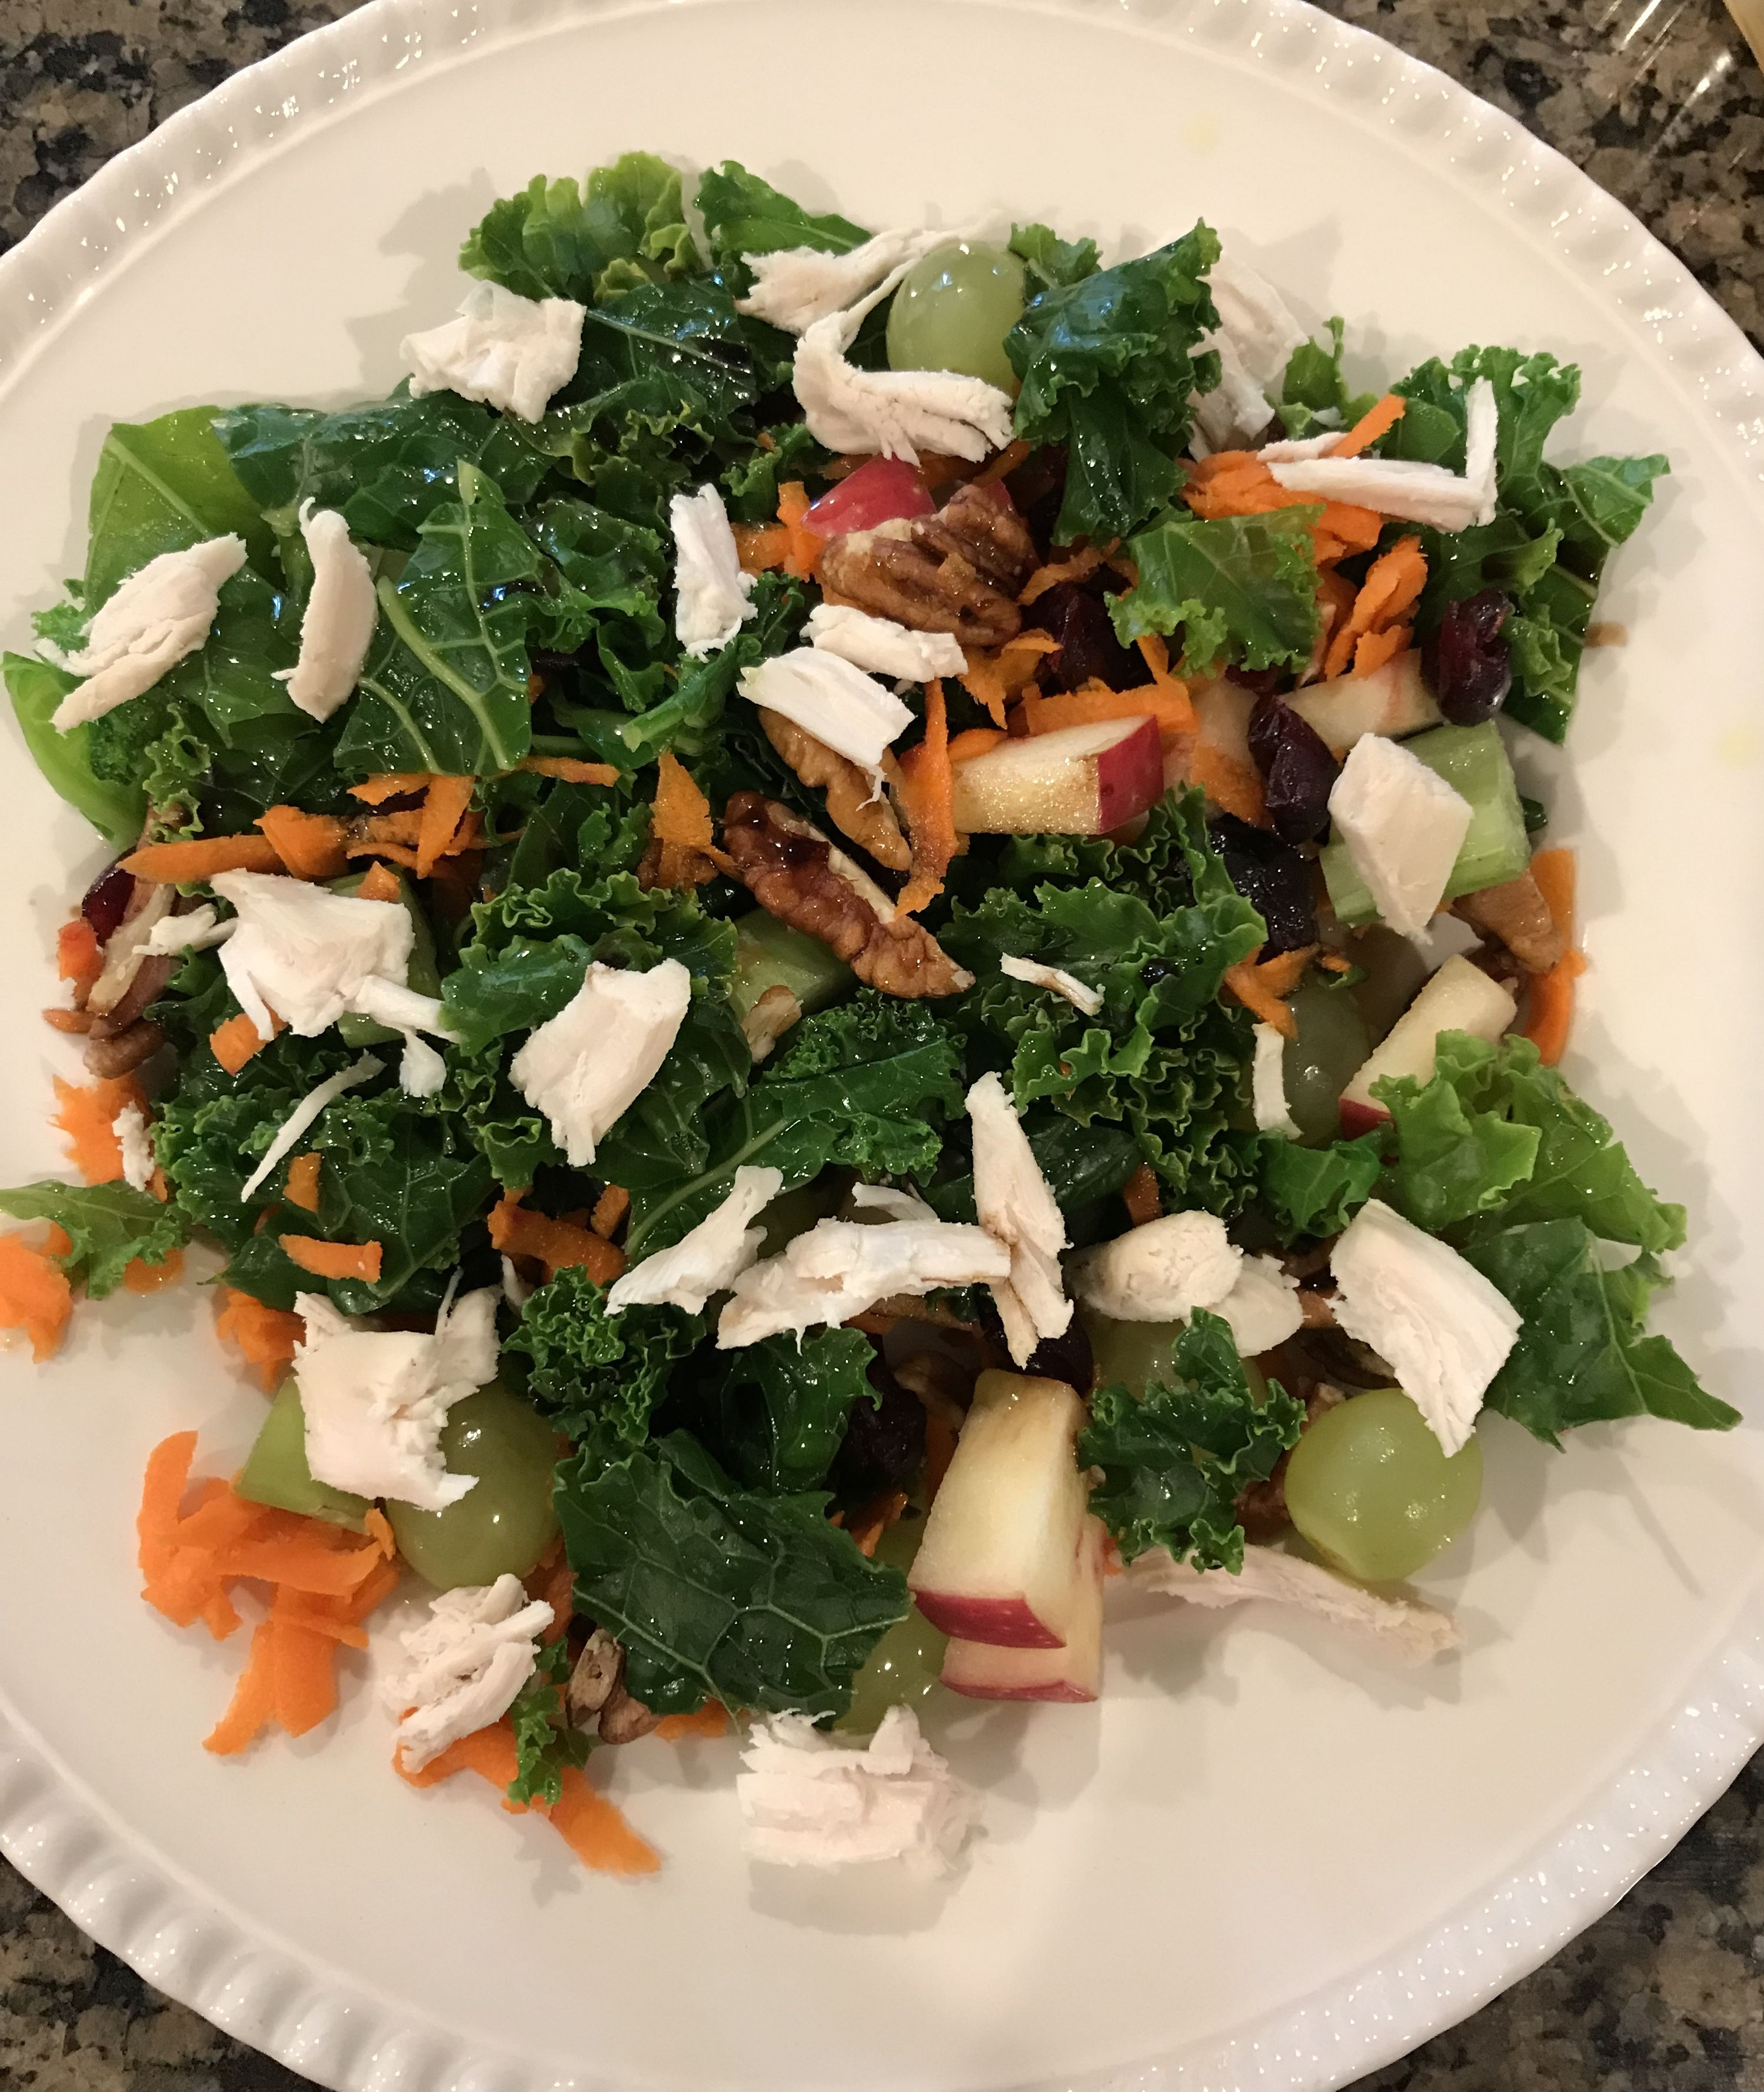 Whole30 Approved Salad With Boiled Kale, Chicken, Grated